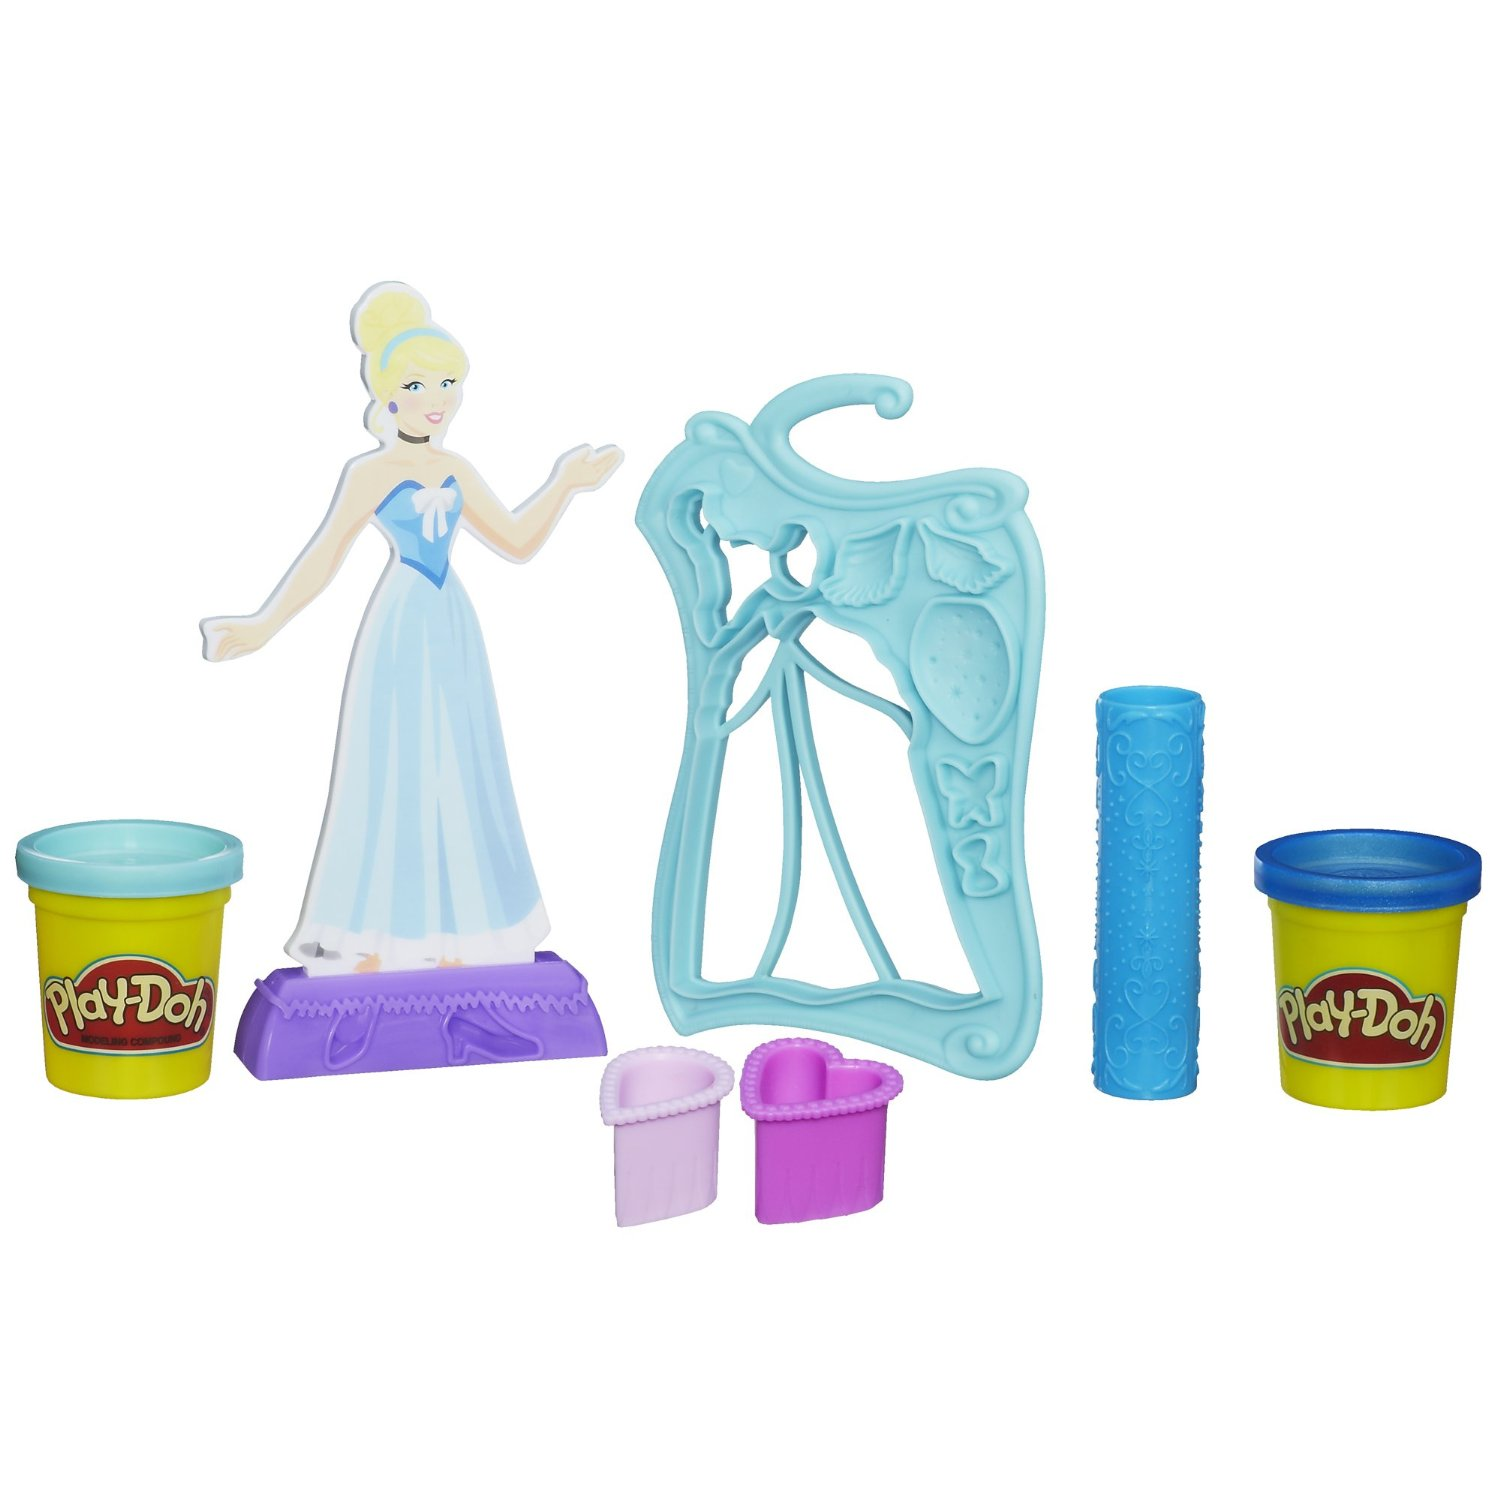 Bột nặn Play-Doh Design-a-Dress Fashion Kit Featuring Disney Princess Cinderella